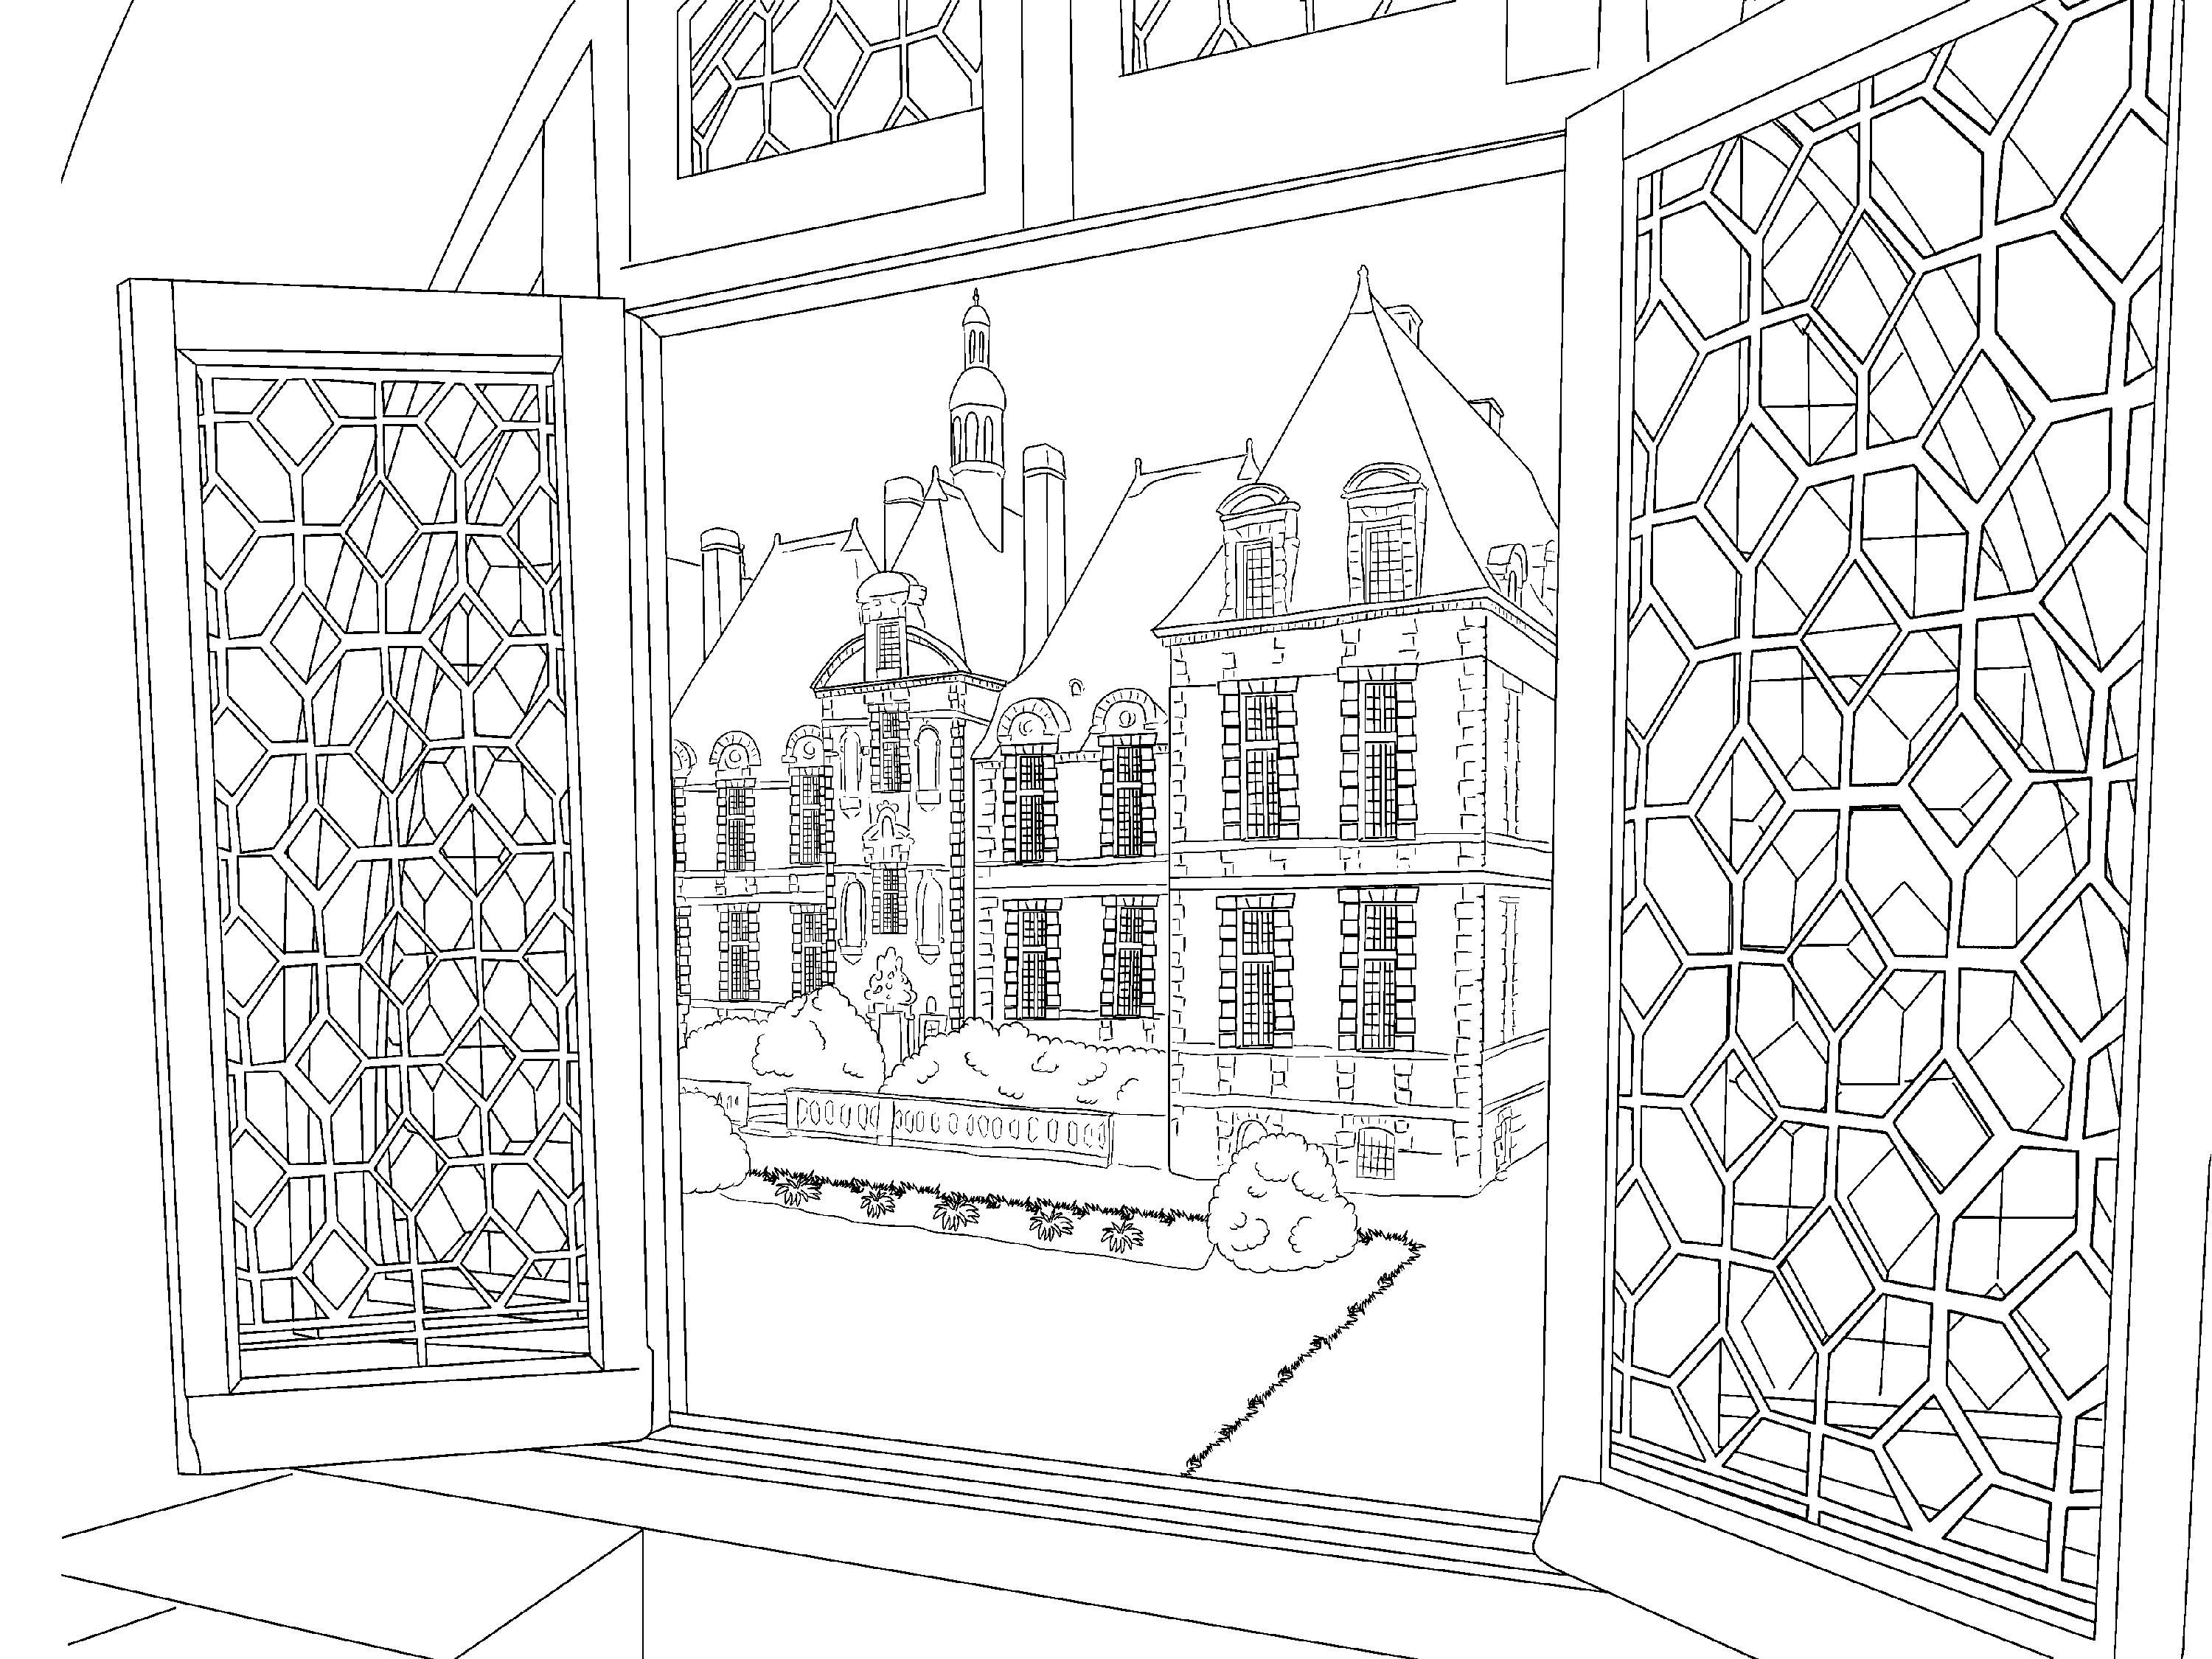 Beautiful Scenery Colouring Pages | Coloring Sheets | Pinterest ...